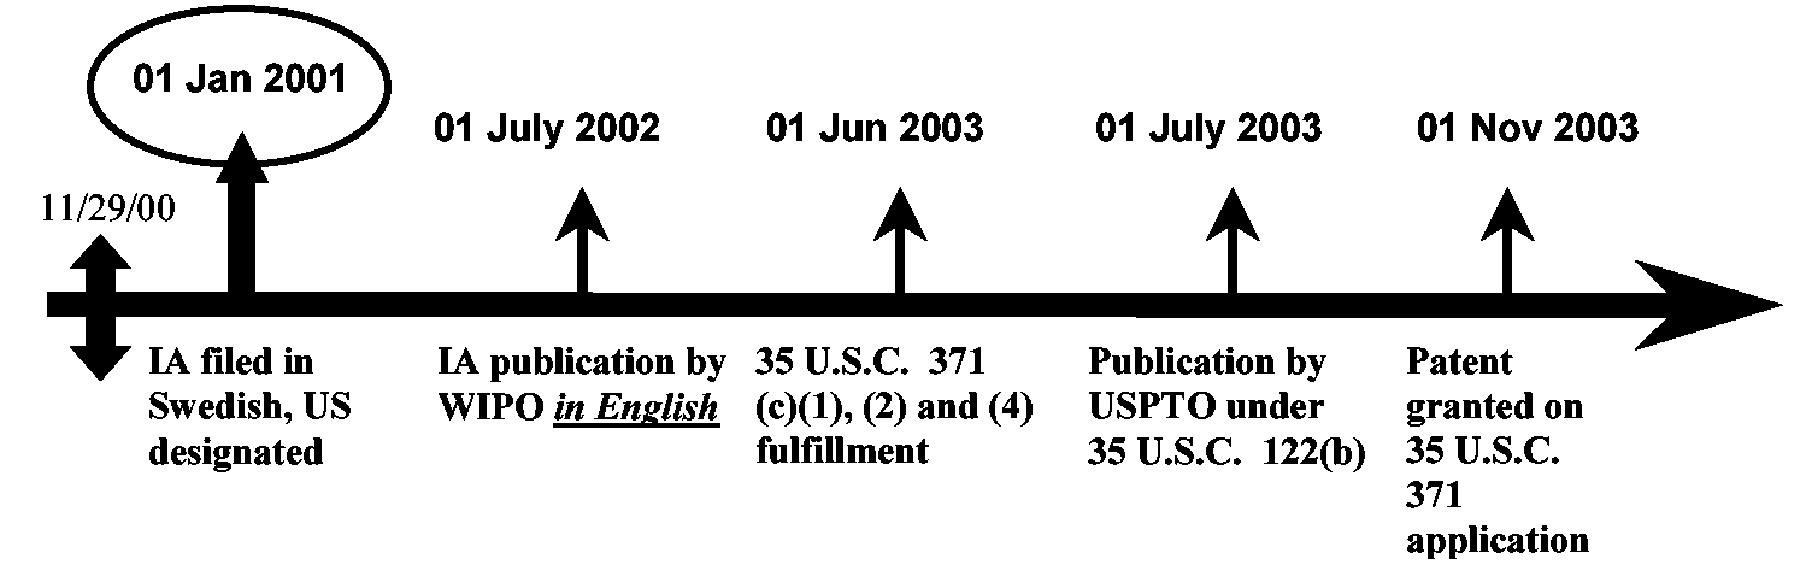 706 rejection of claims example 4 references based on the national stage 35 usc 371 of an hexwebz Gallery